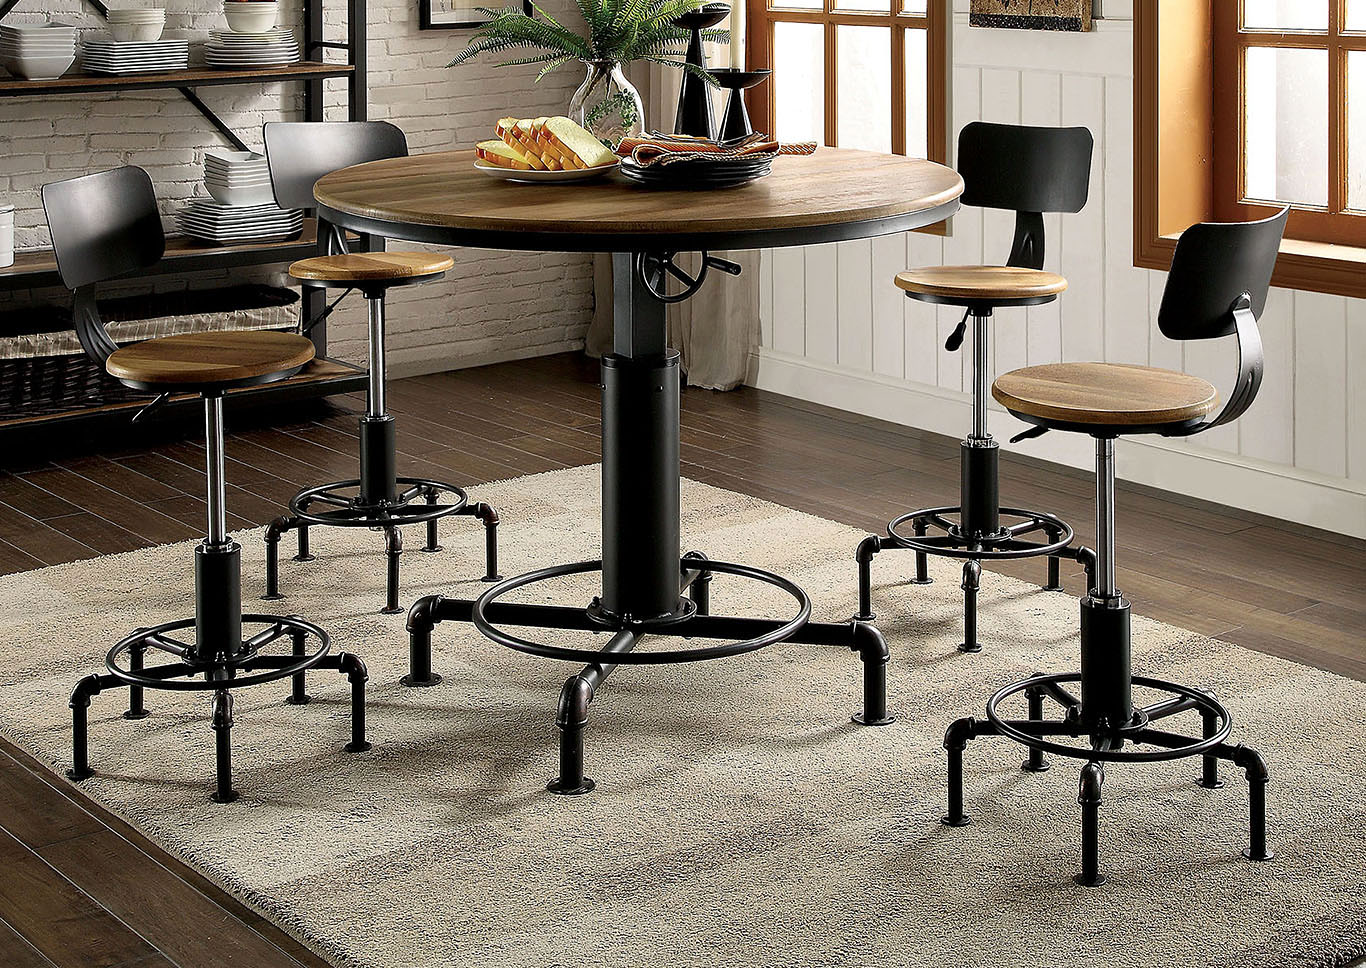 Fran Sand Black Dining Table w/Height Adjustable,Furniture of America